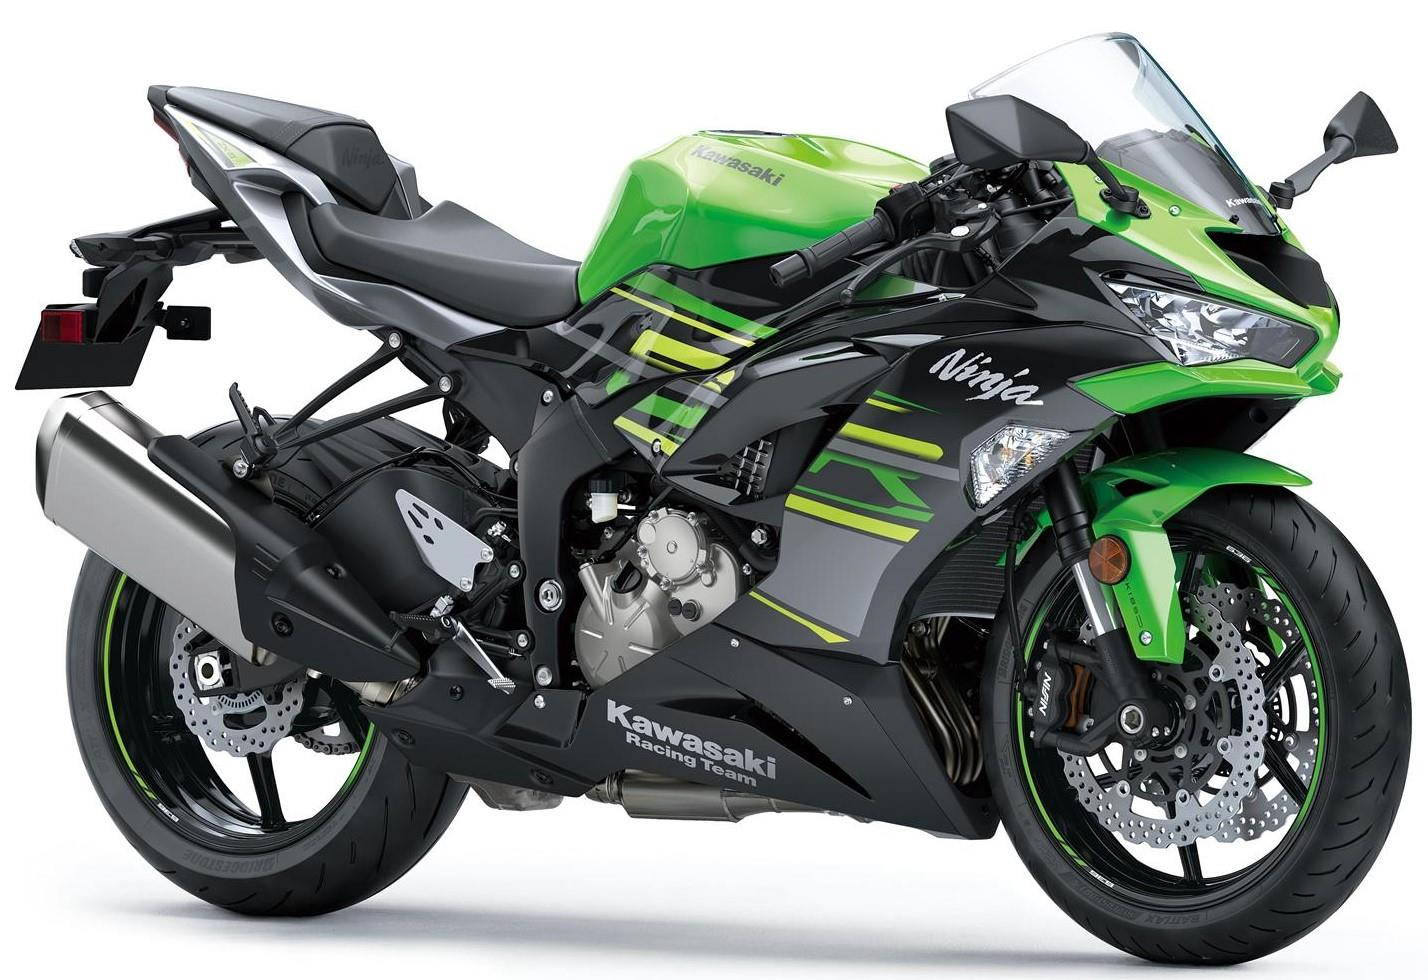 Kawasaki Ninja Zx 6r Price Specs Images Mileage Colors